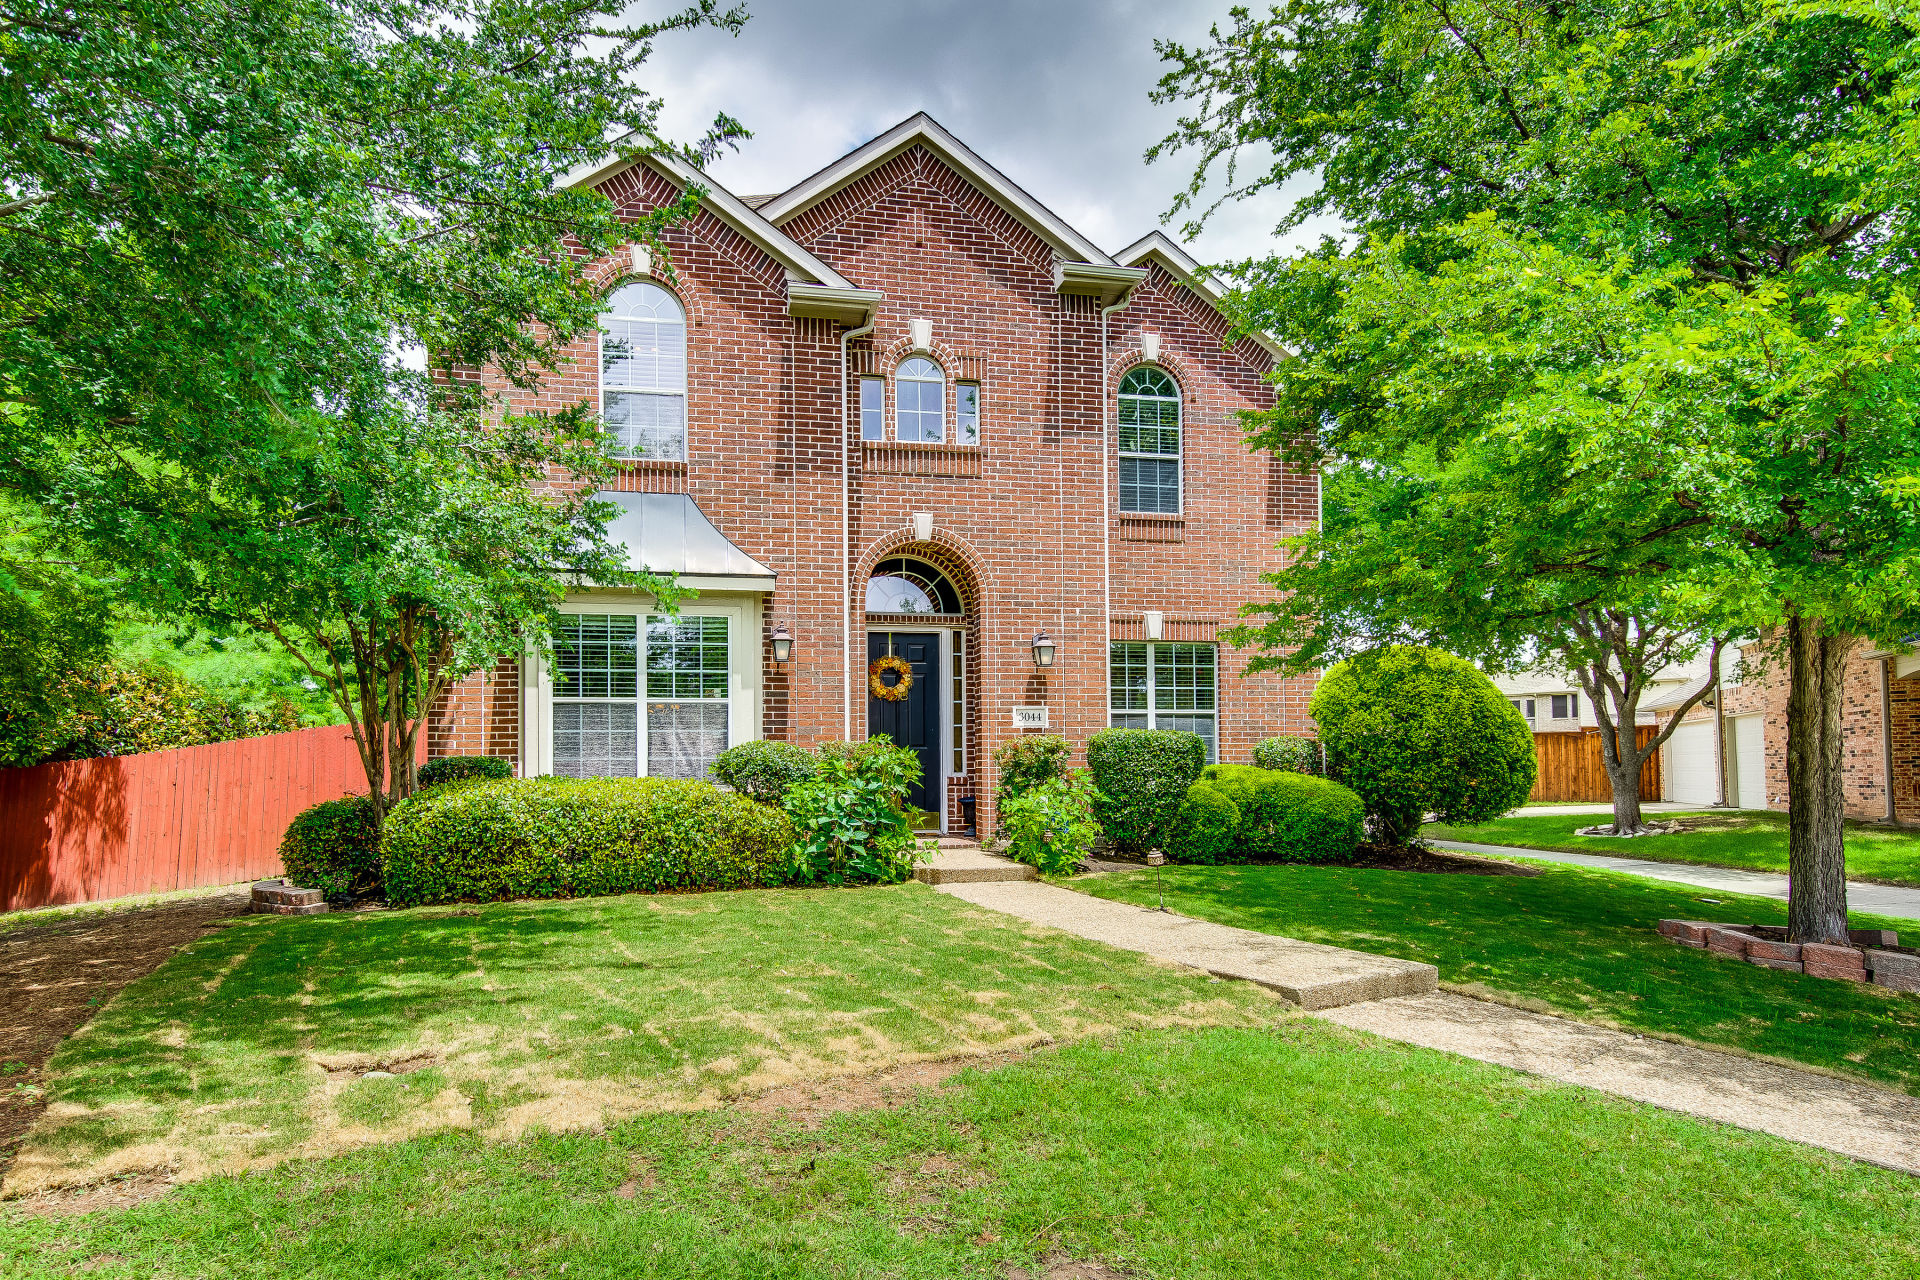 JUST LISTED IN FRISCO!